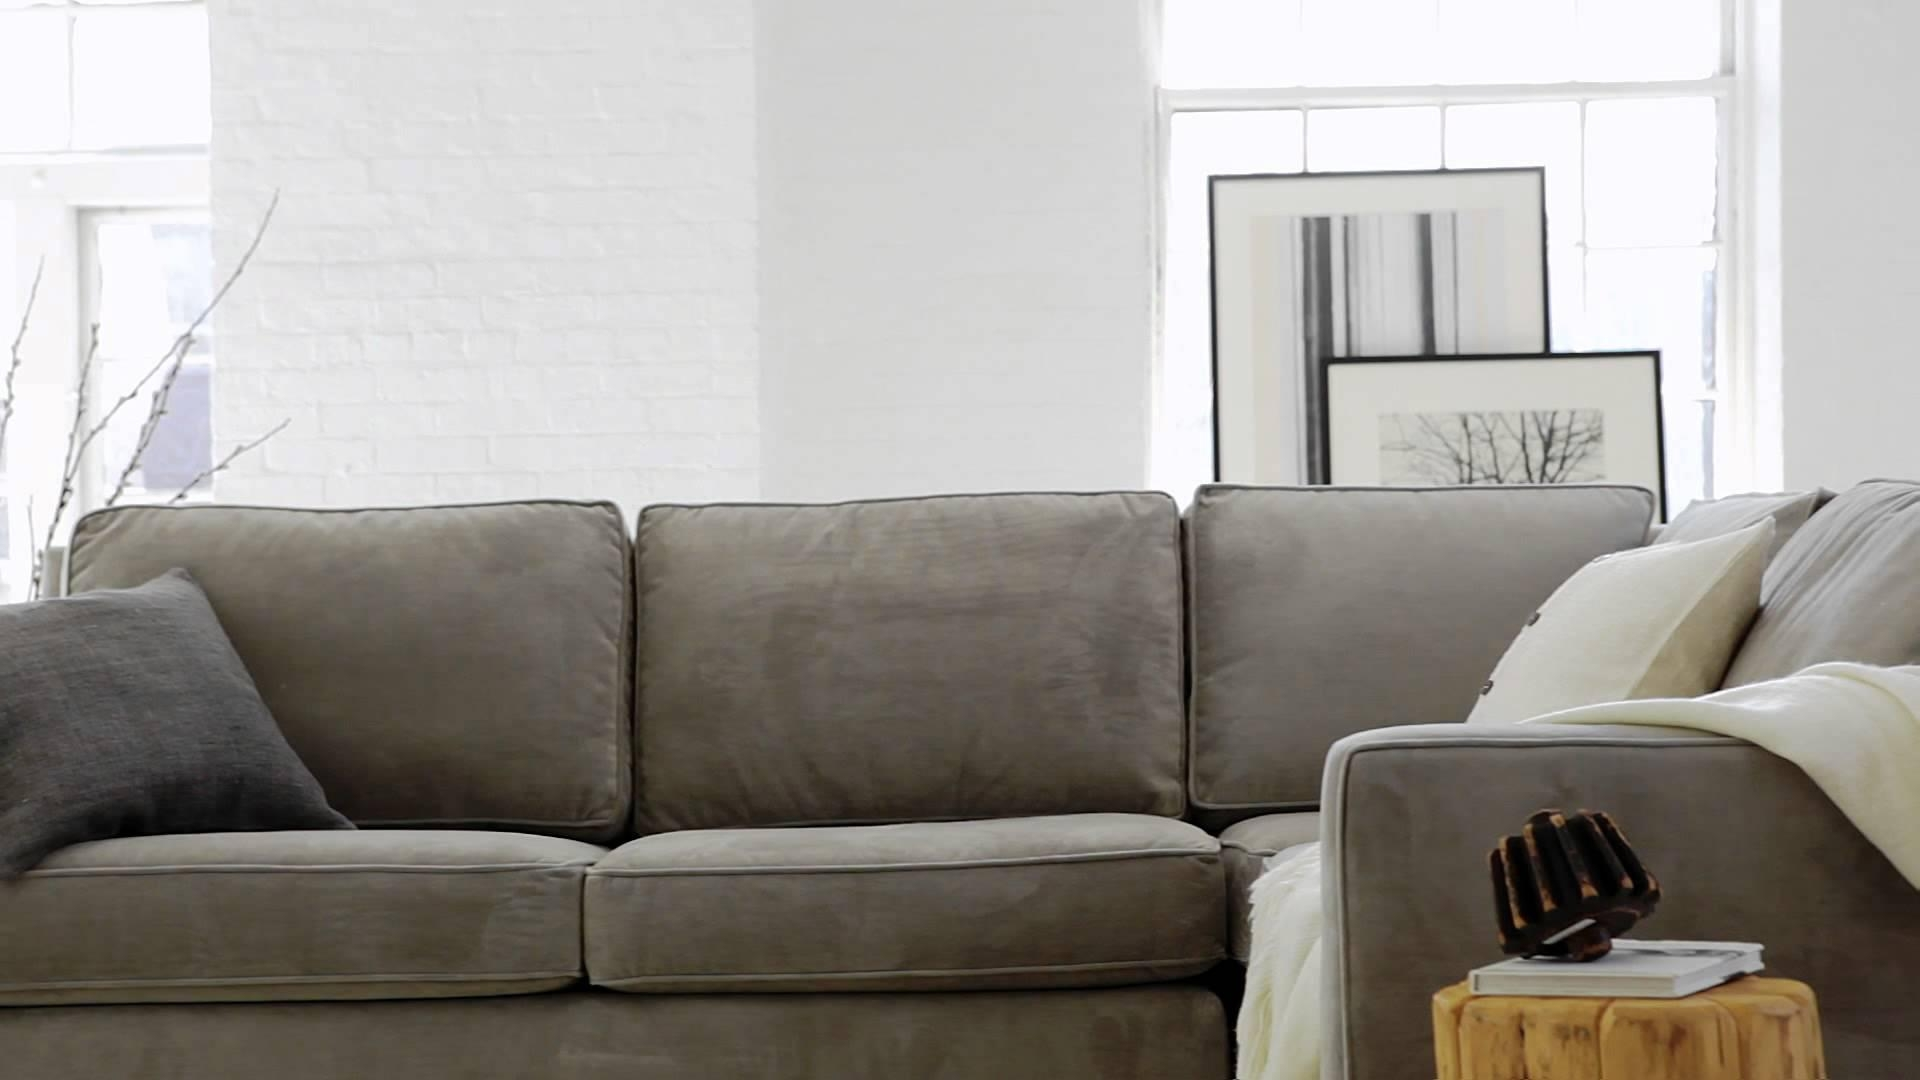 Furniture: Henry Sectional West Elm Reviews | West Elm Sofa Inside West Elm Sectionals (Image 7 of 20)